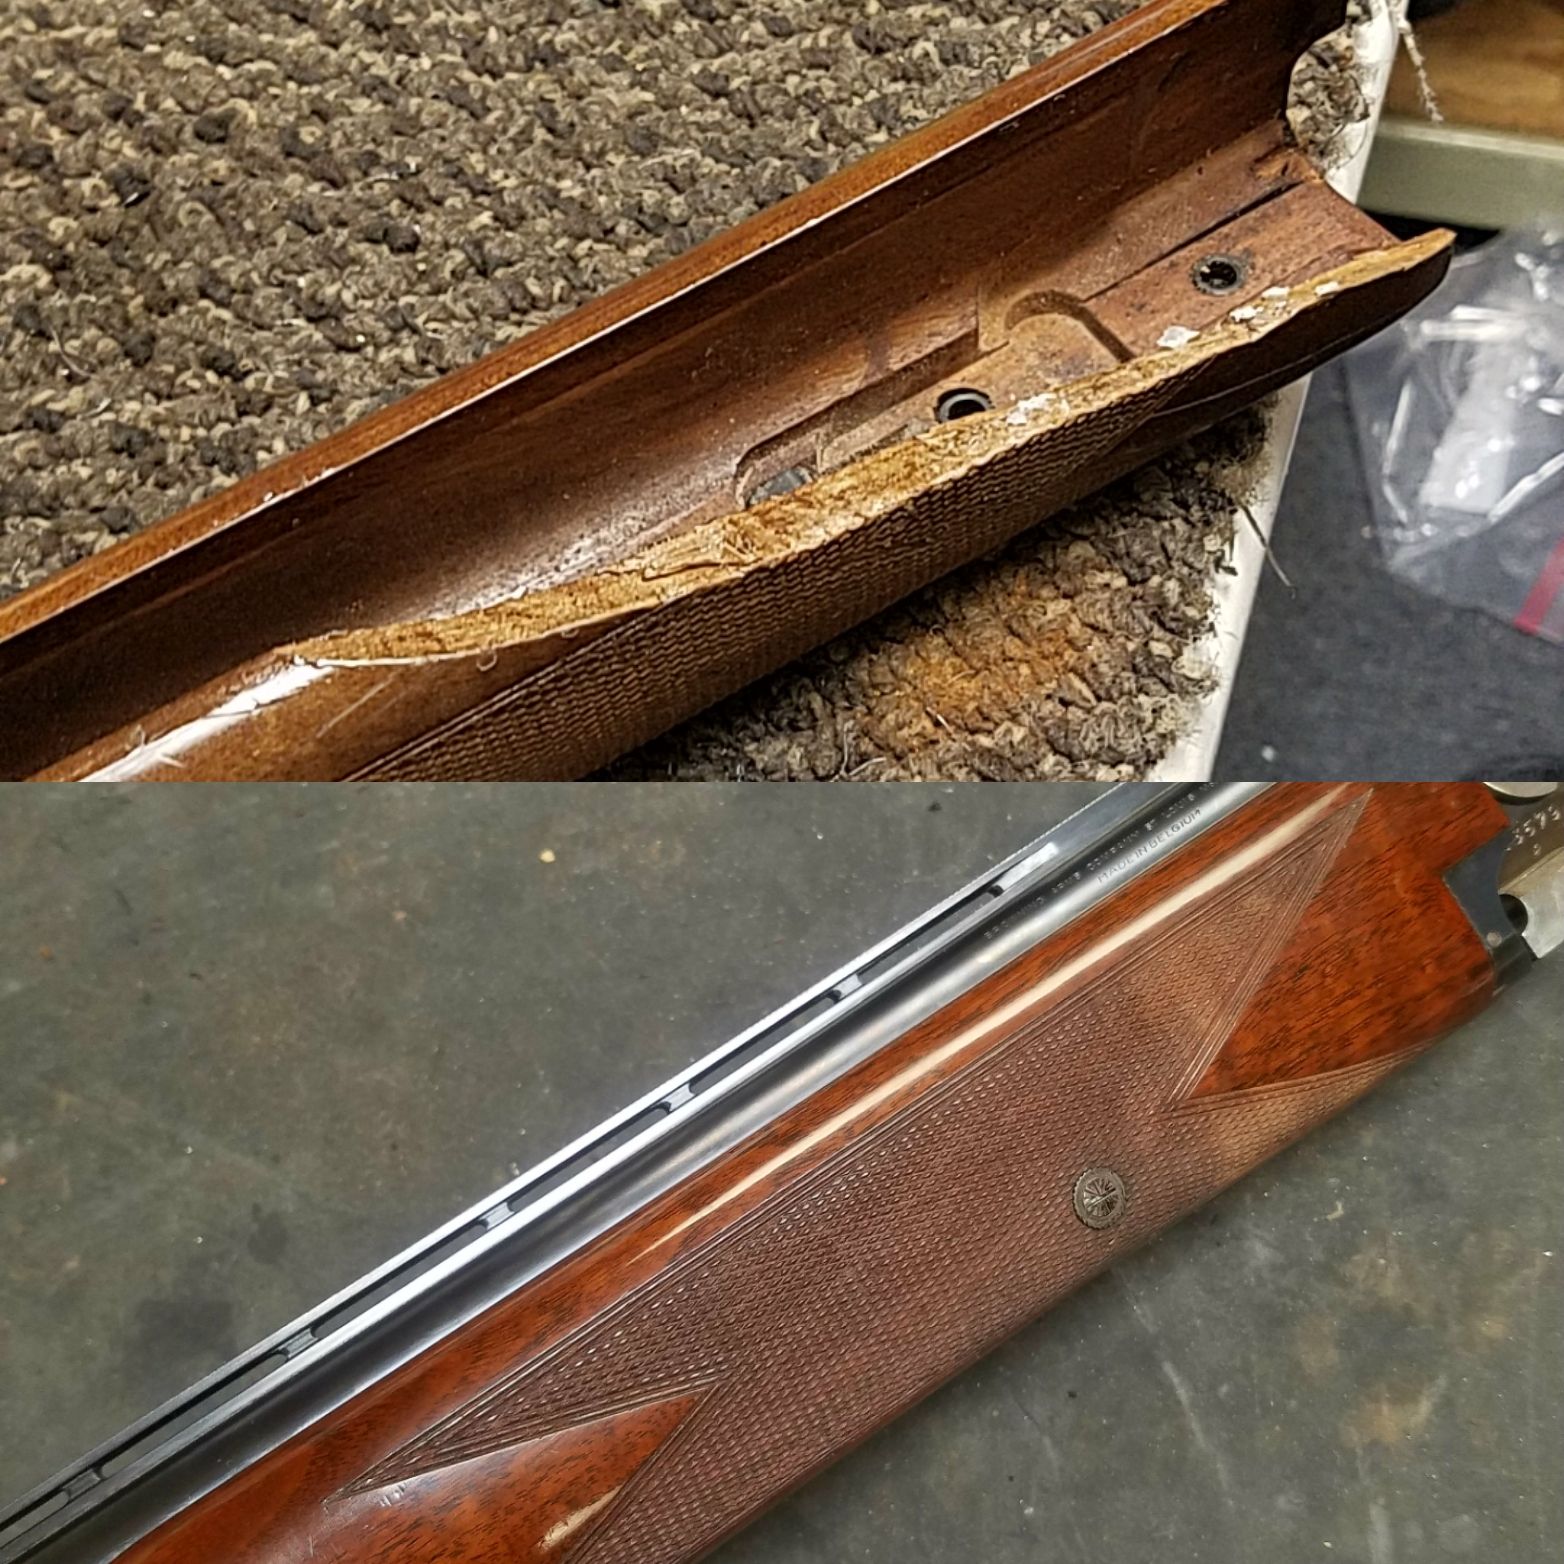 Browning Citori shotgun broken forend repaired and refinished to factory high gloss